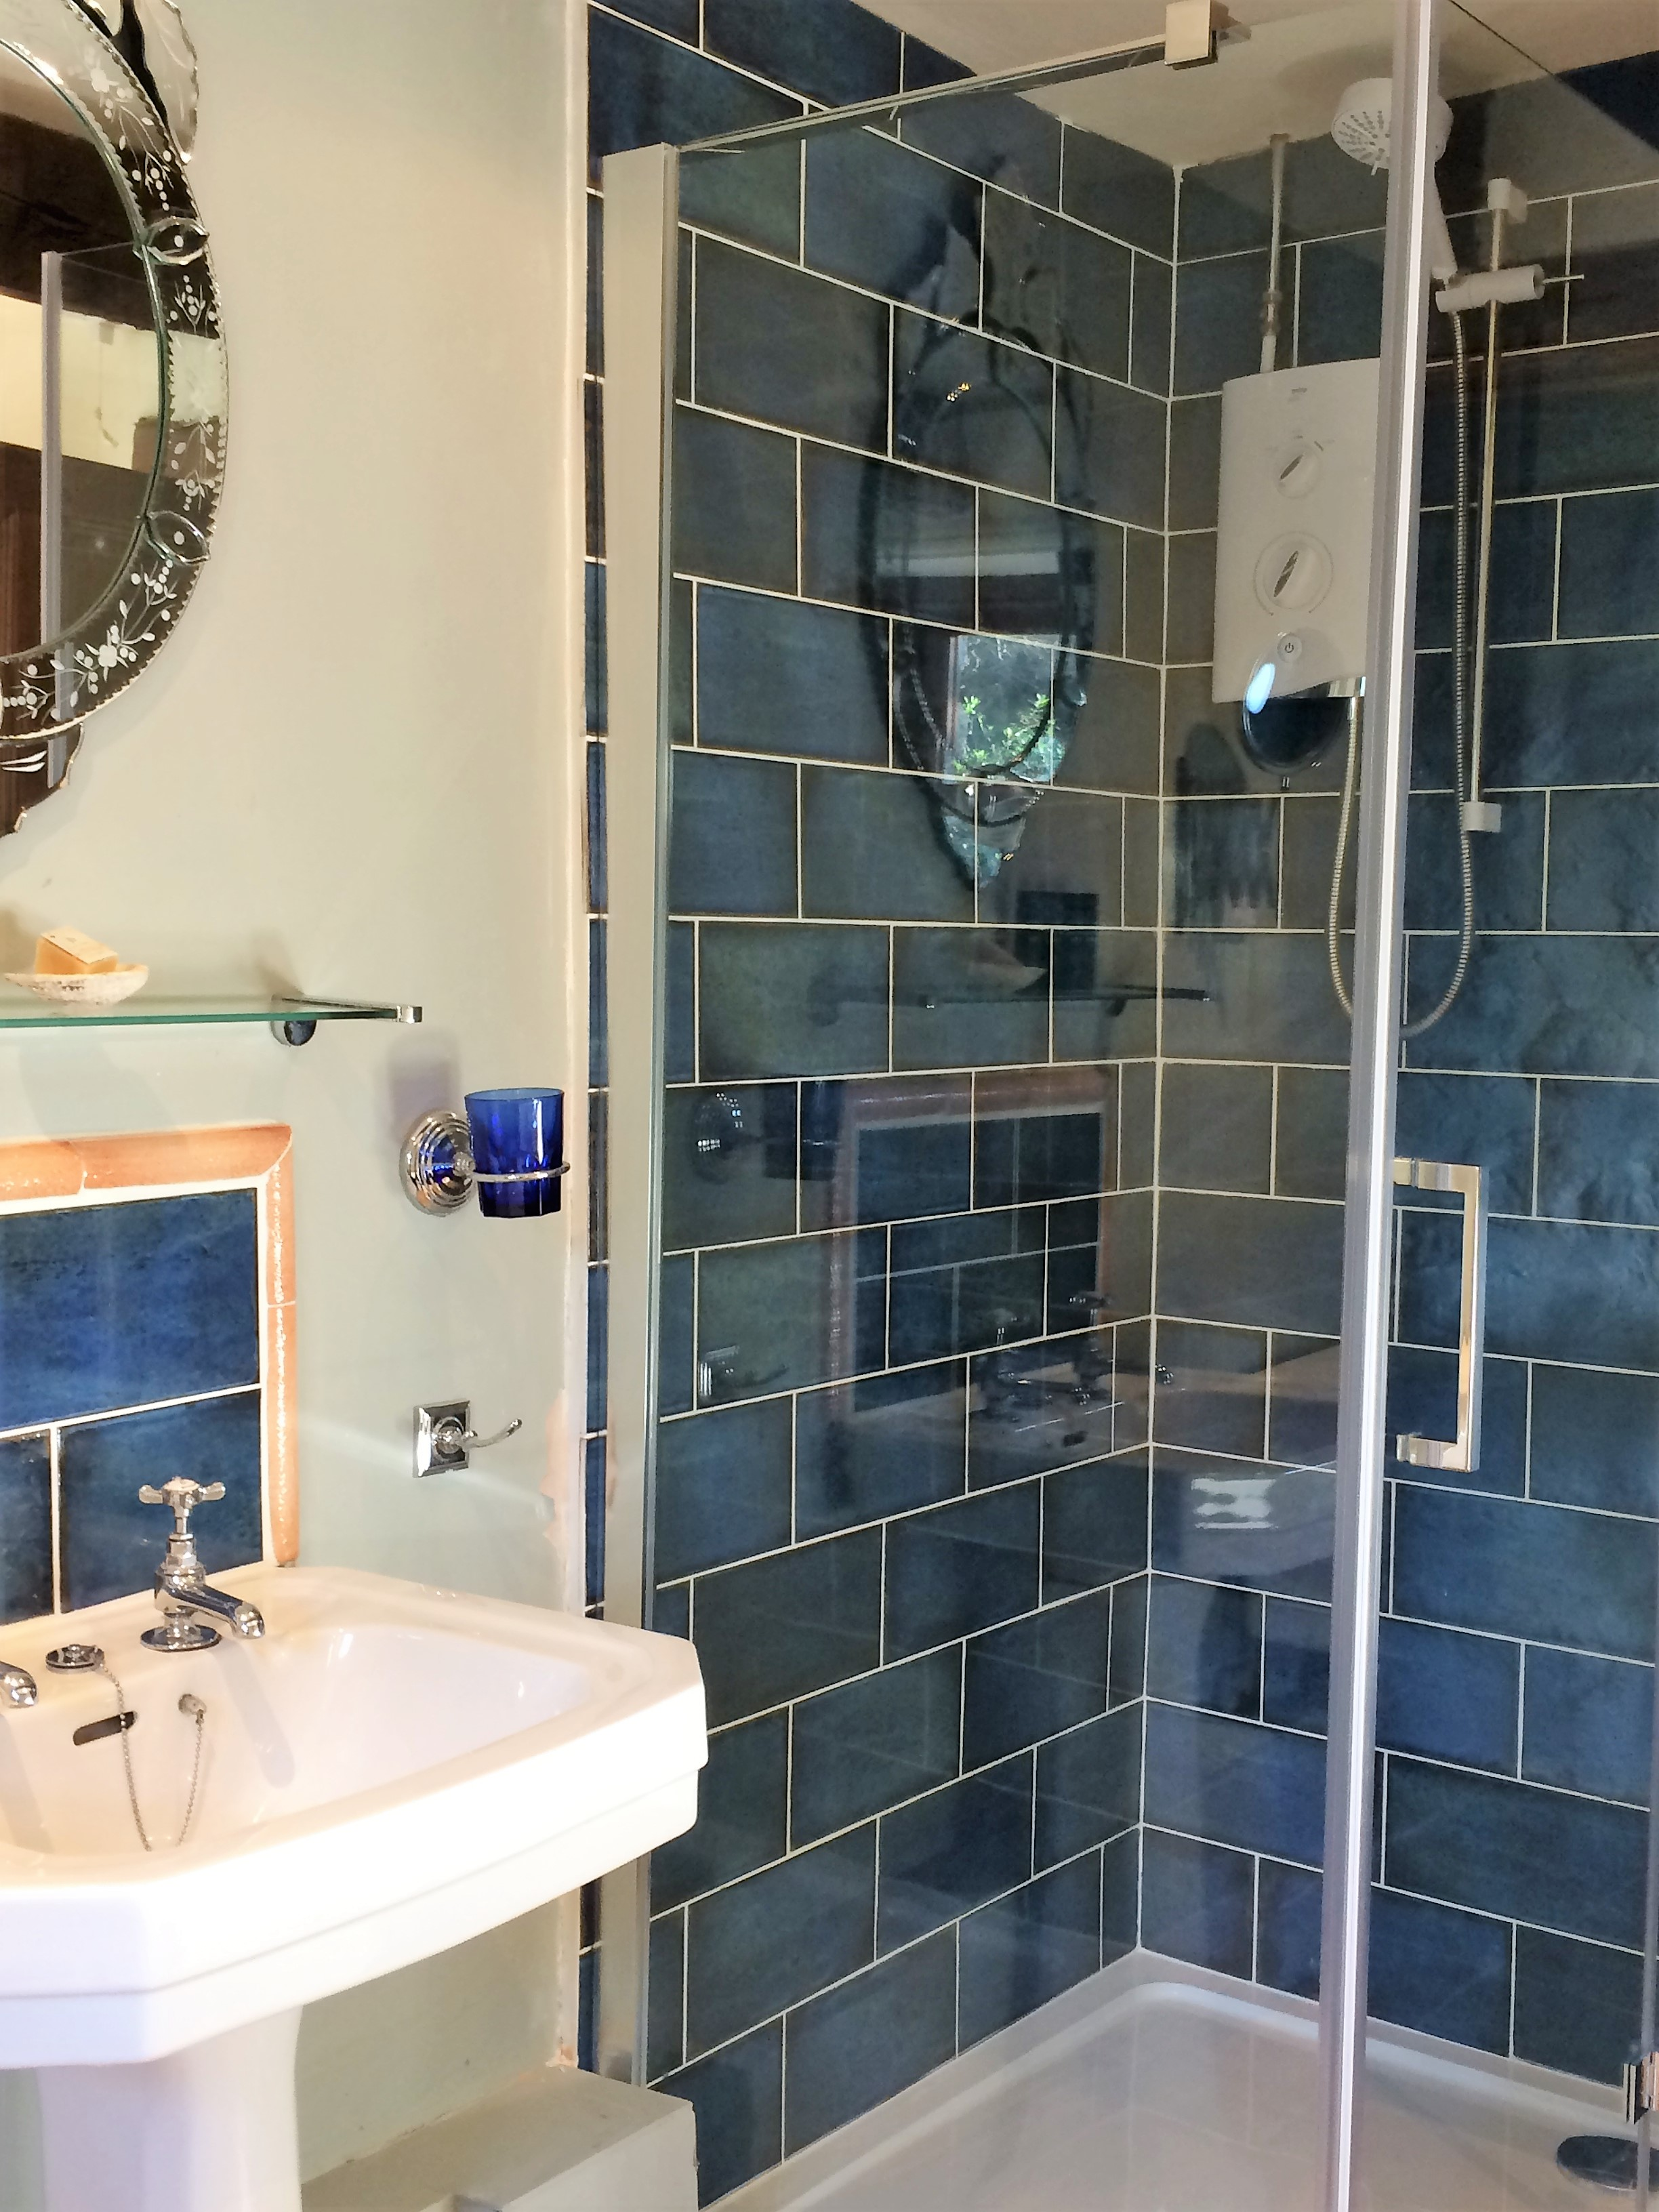 Smart double shower - french inspired decor